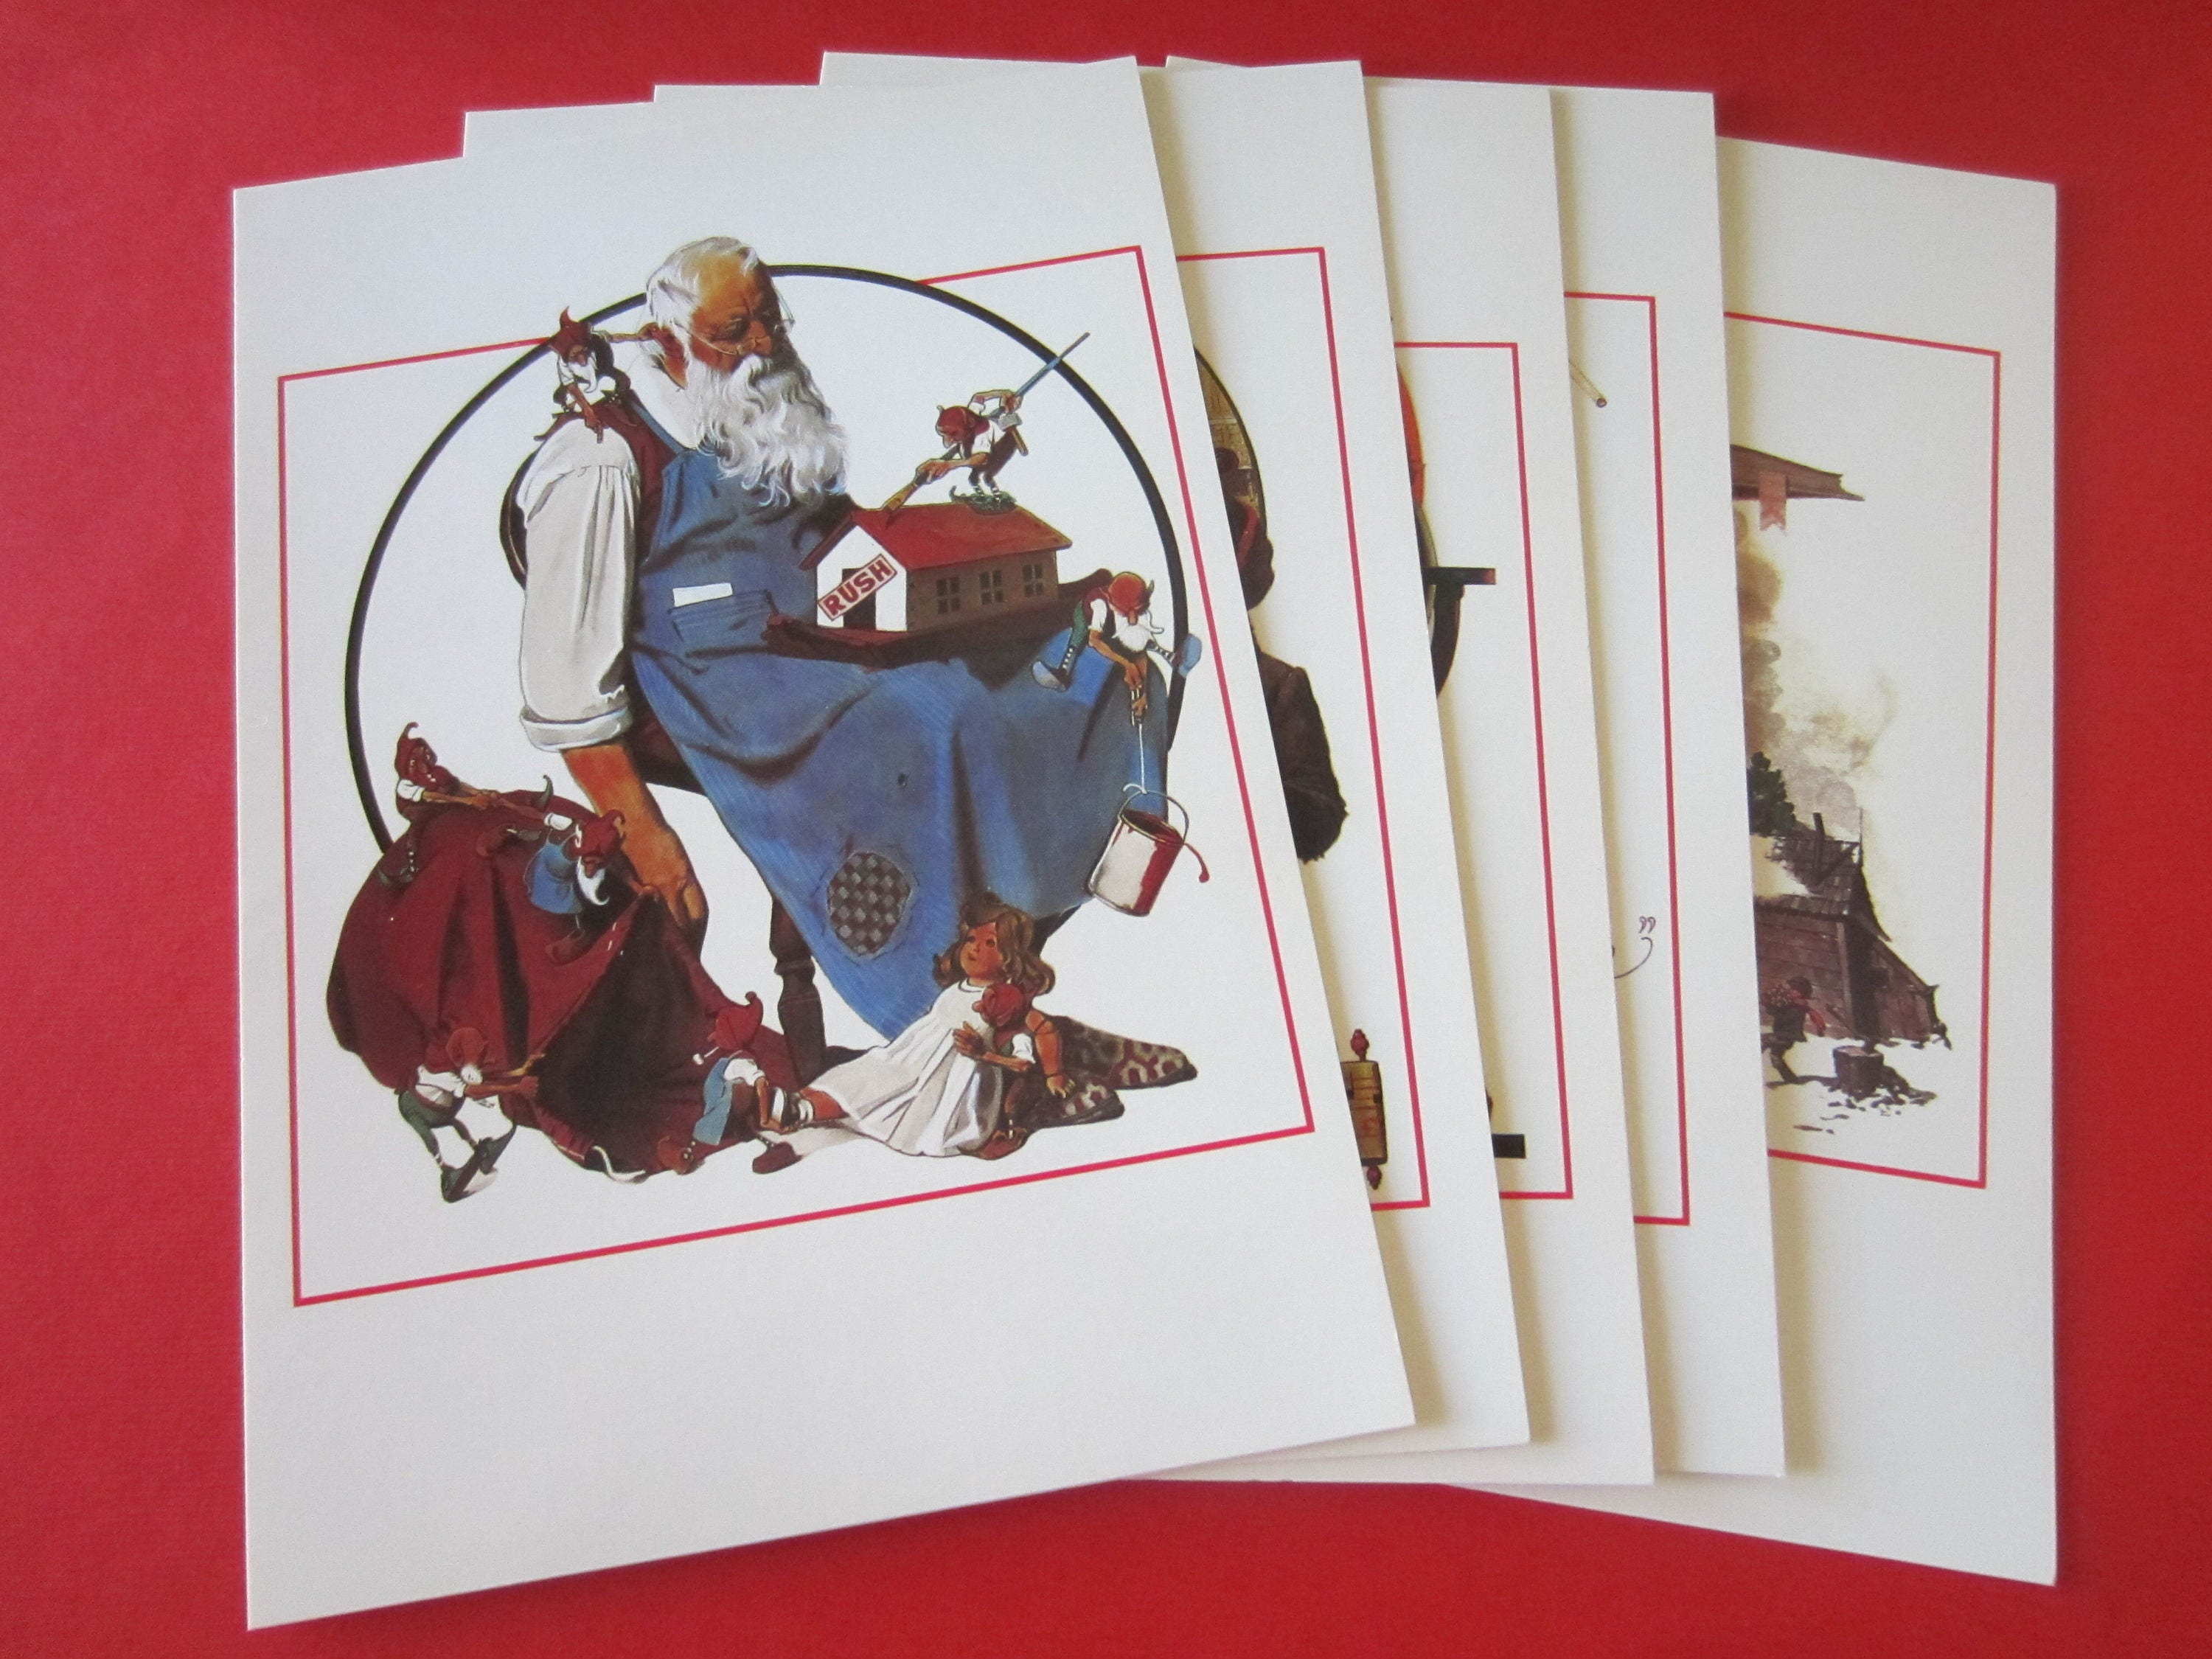 Vintage Norman Rockwell Christmas cards 1993 American Classics